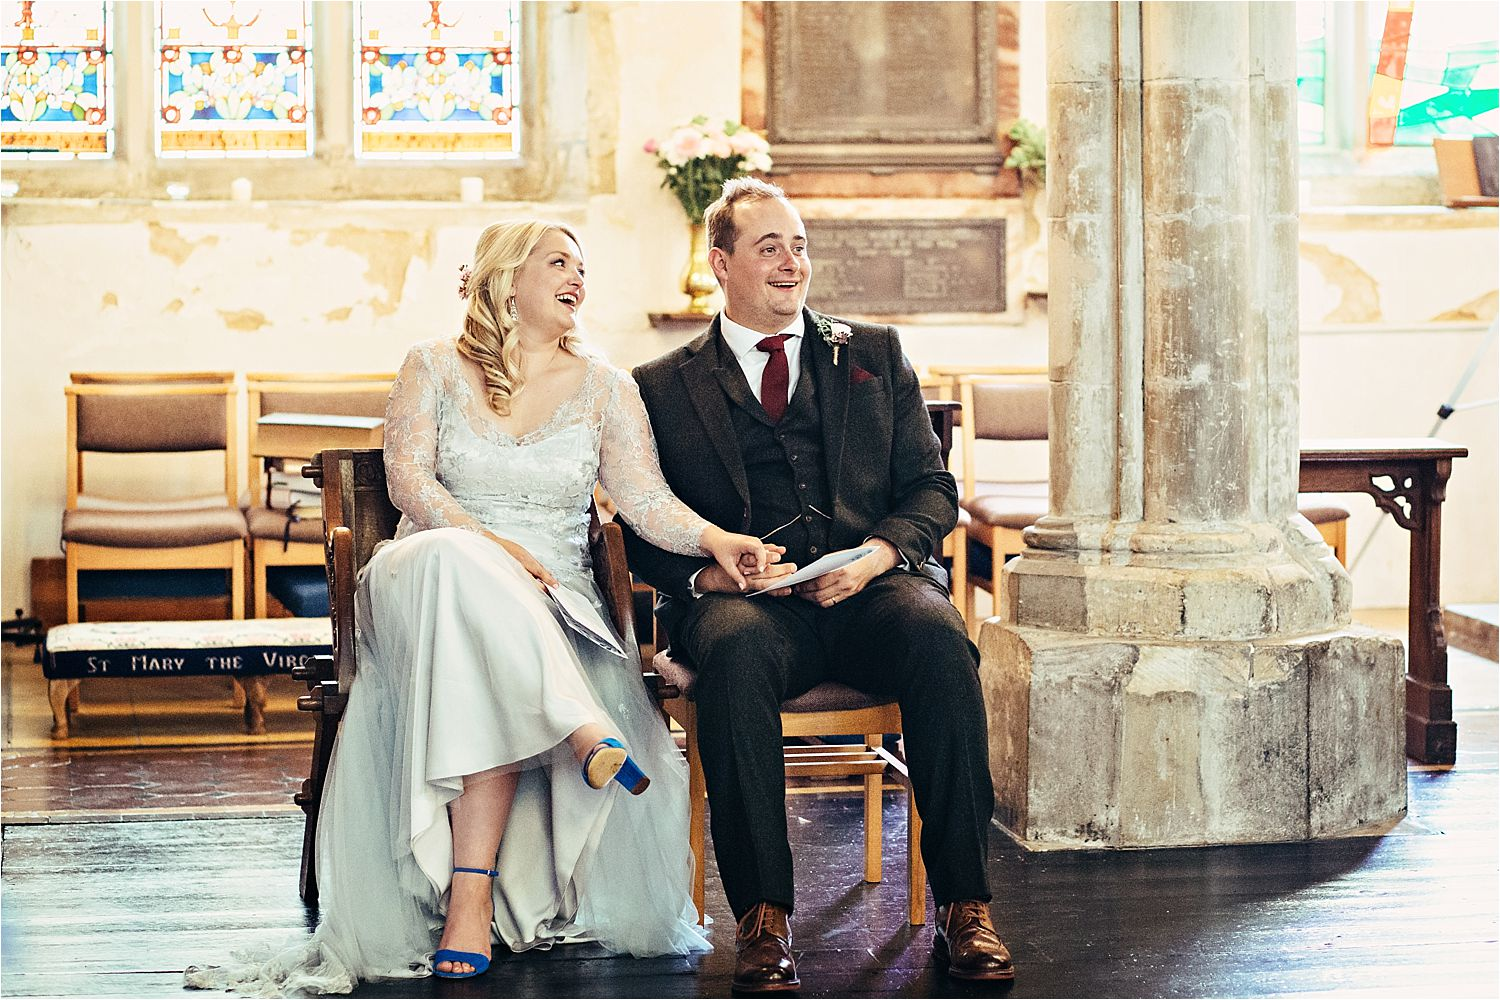 Bride and grrom have a relaxing moment during wedding ceremony in Bedfordshire church